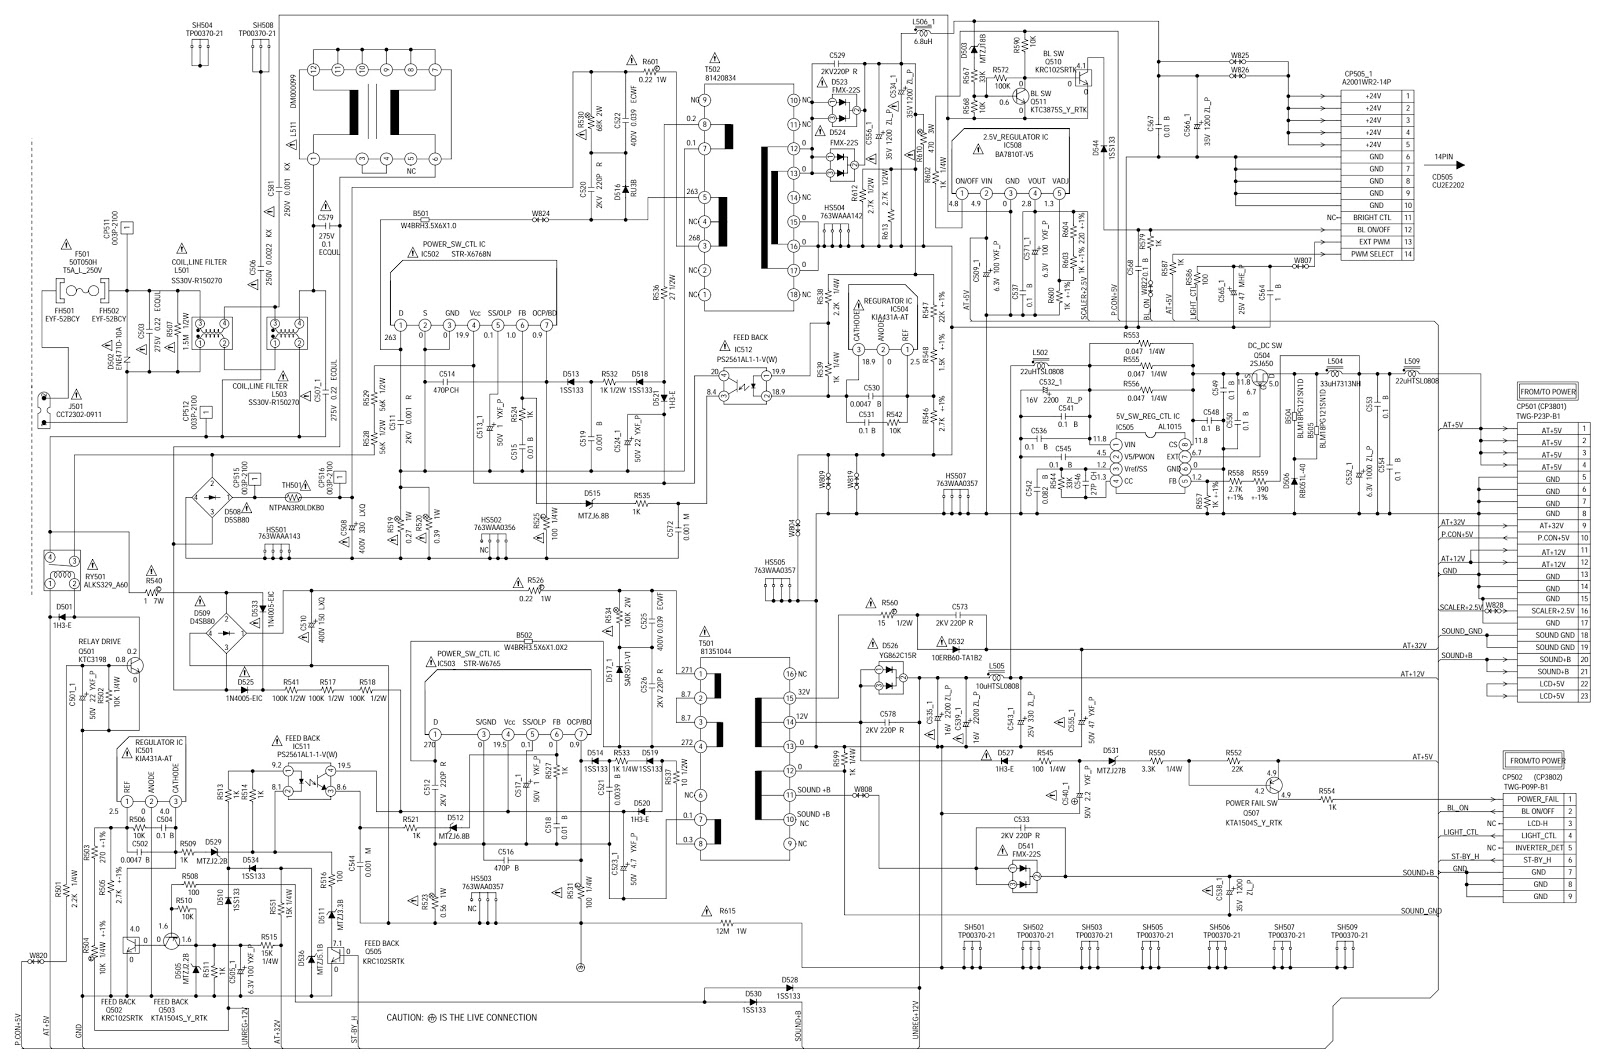 Toshiba 32w300p Service Mode Initialization Smps Circuit Diagram And Pwb Power Schematic